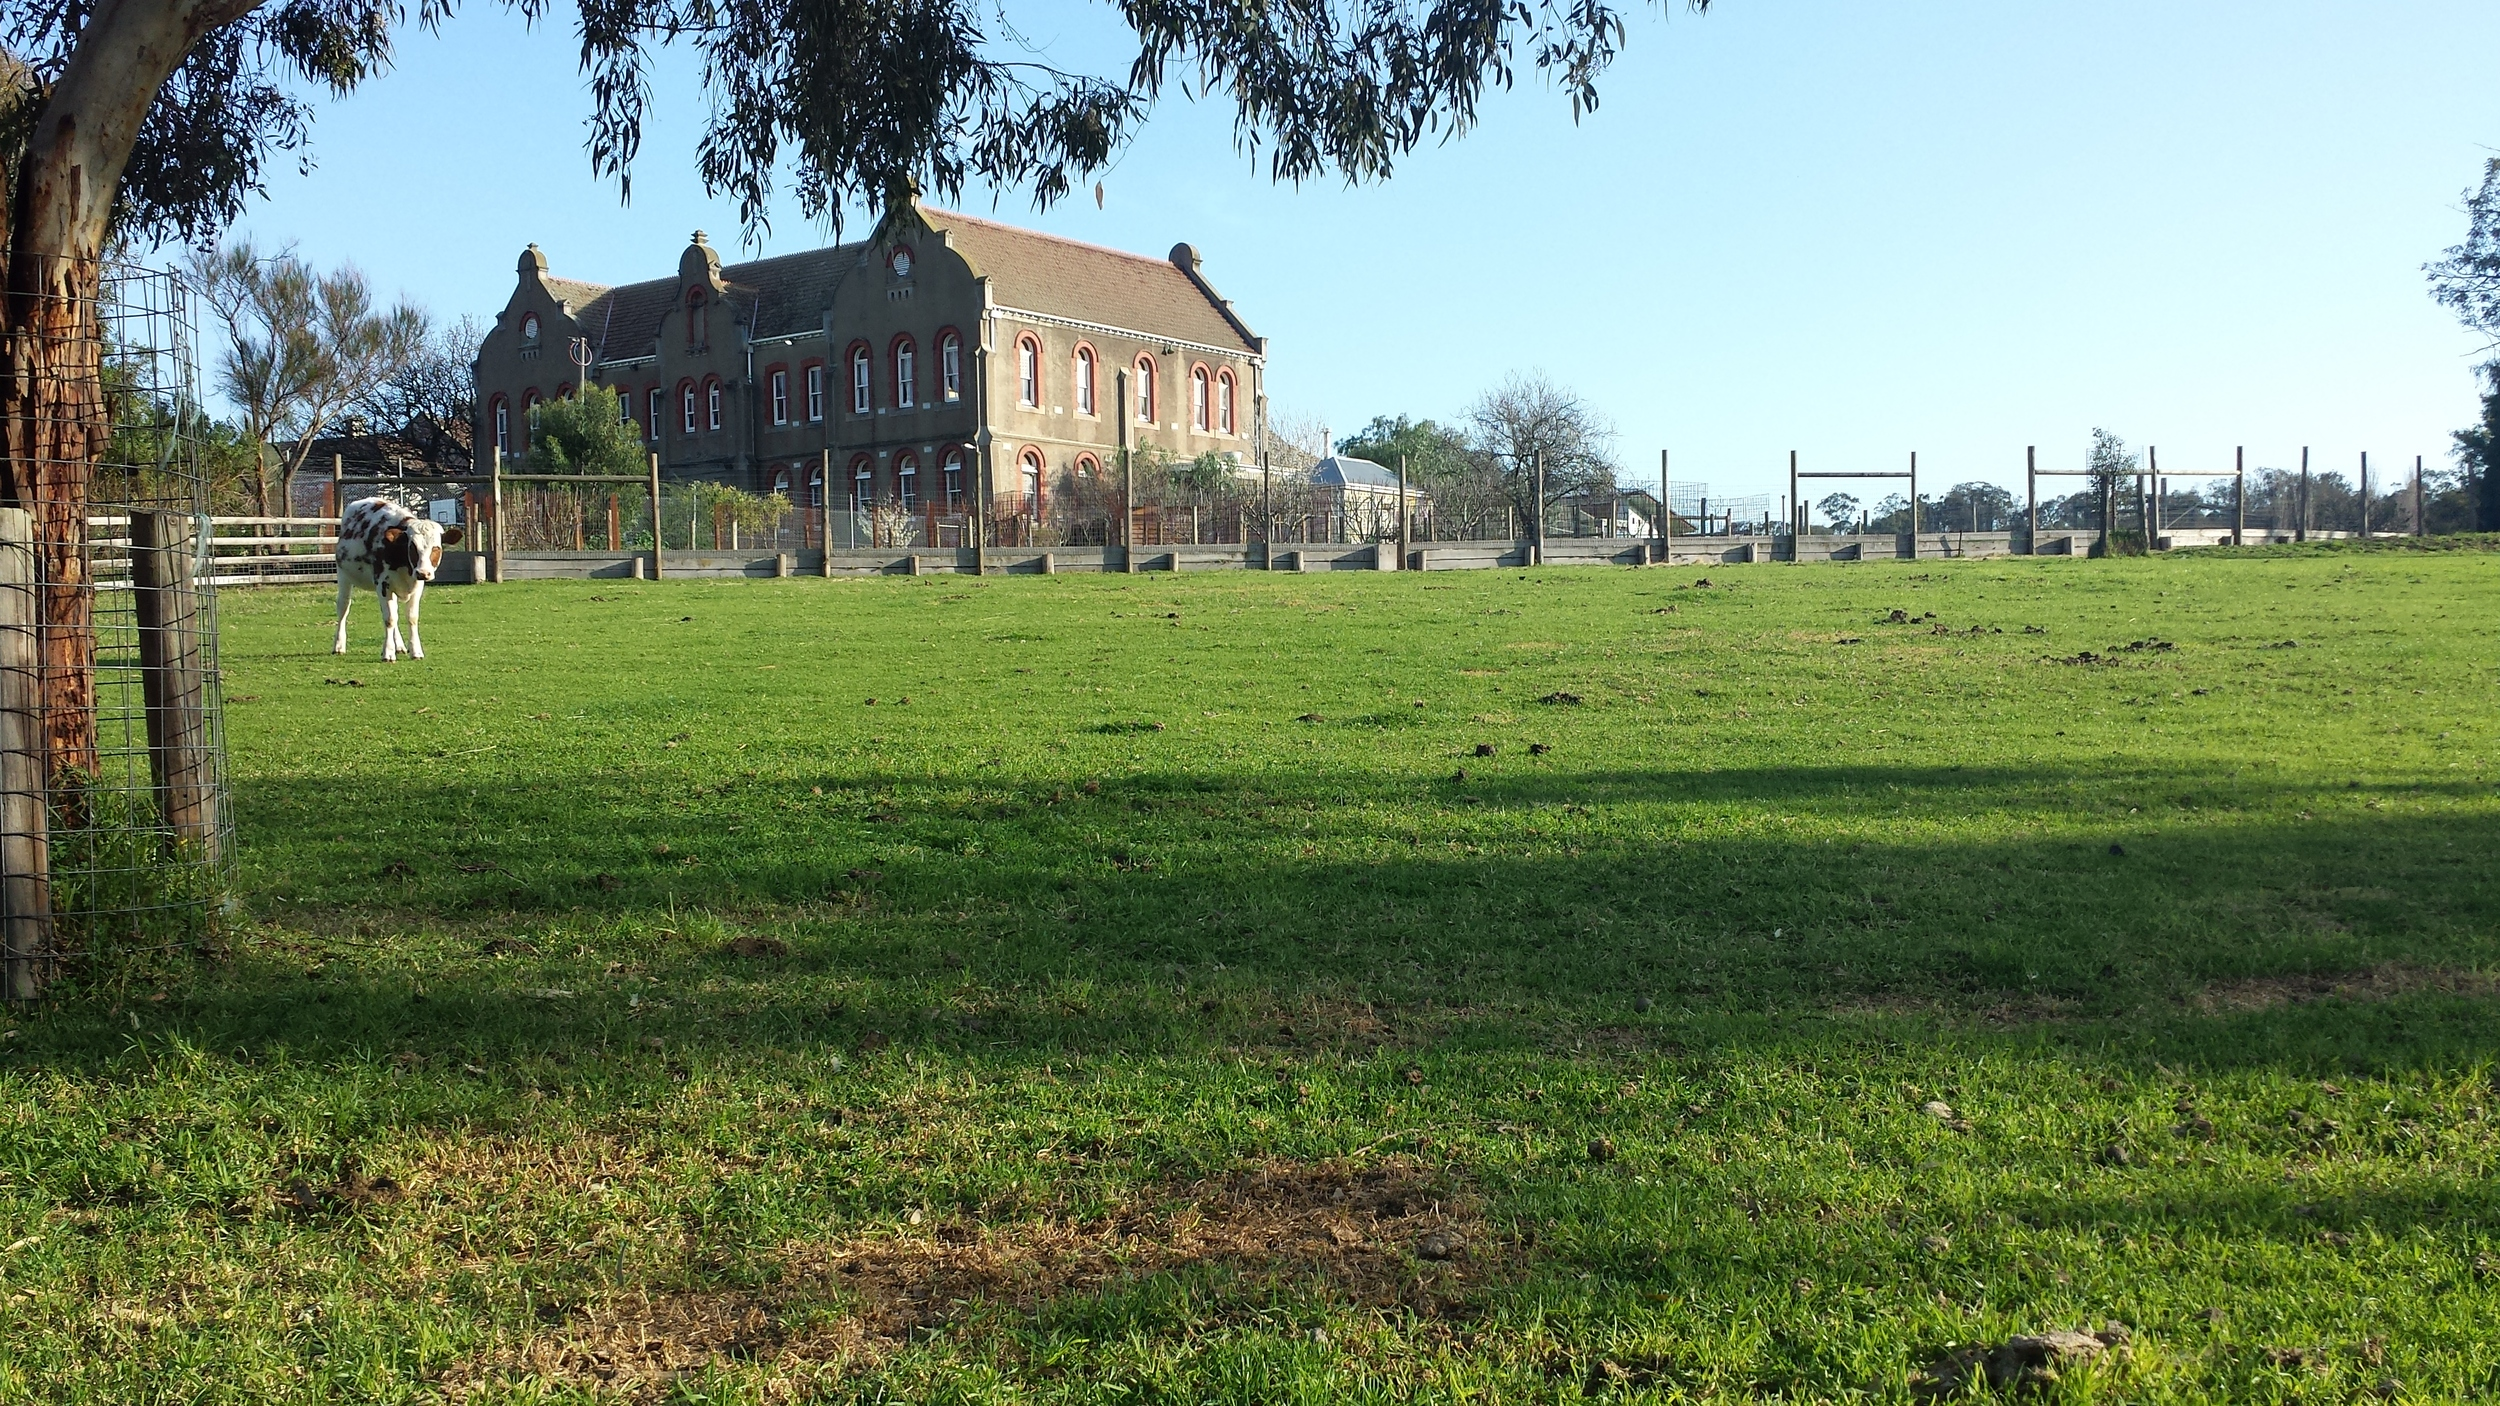 Looking from the Collingwood Childrens' Farm to the Abbotsford Convent.